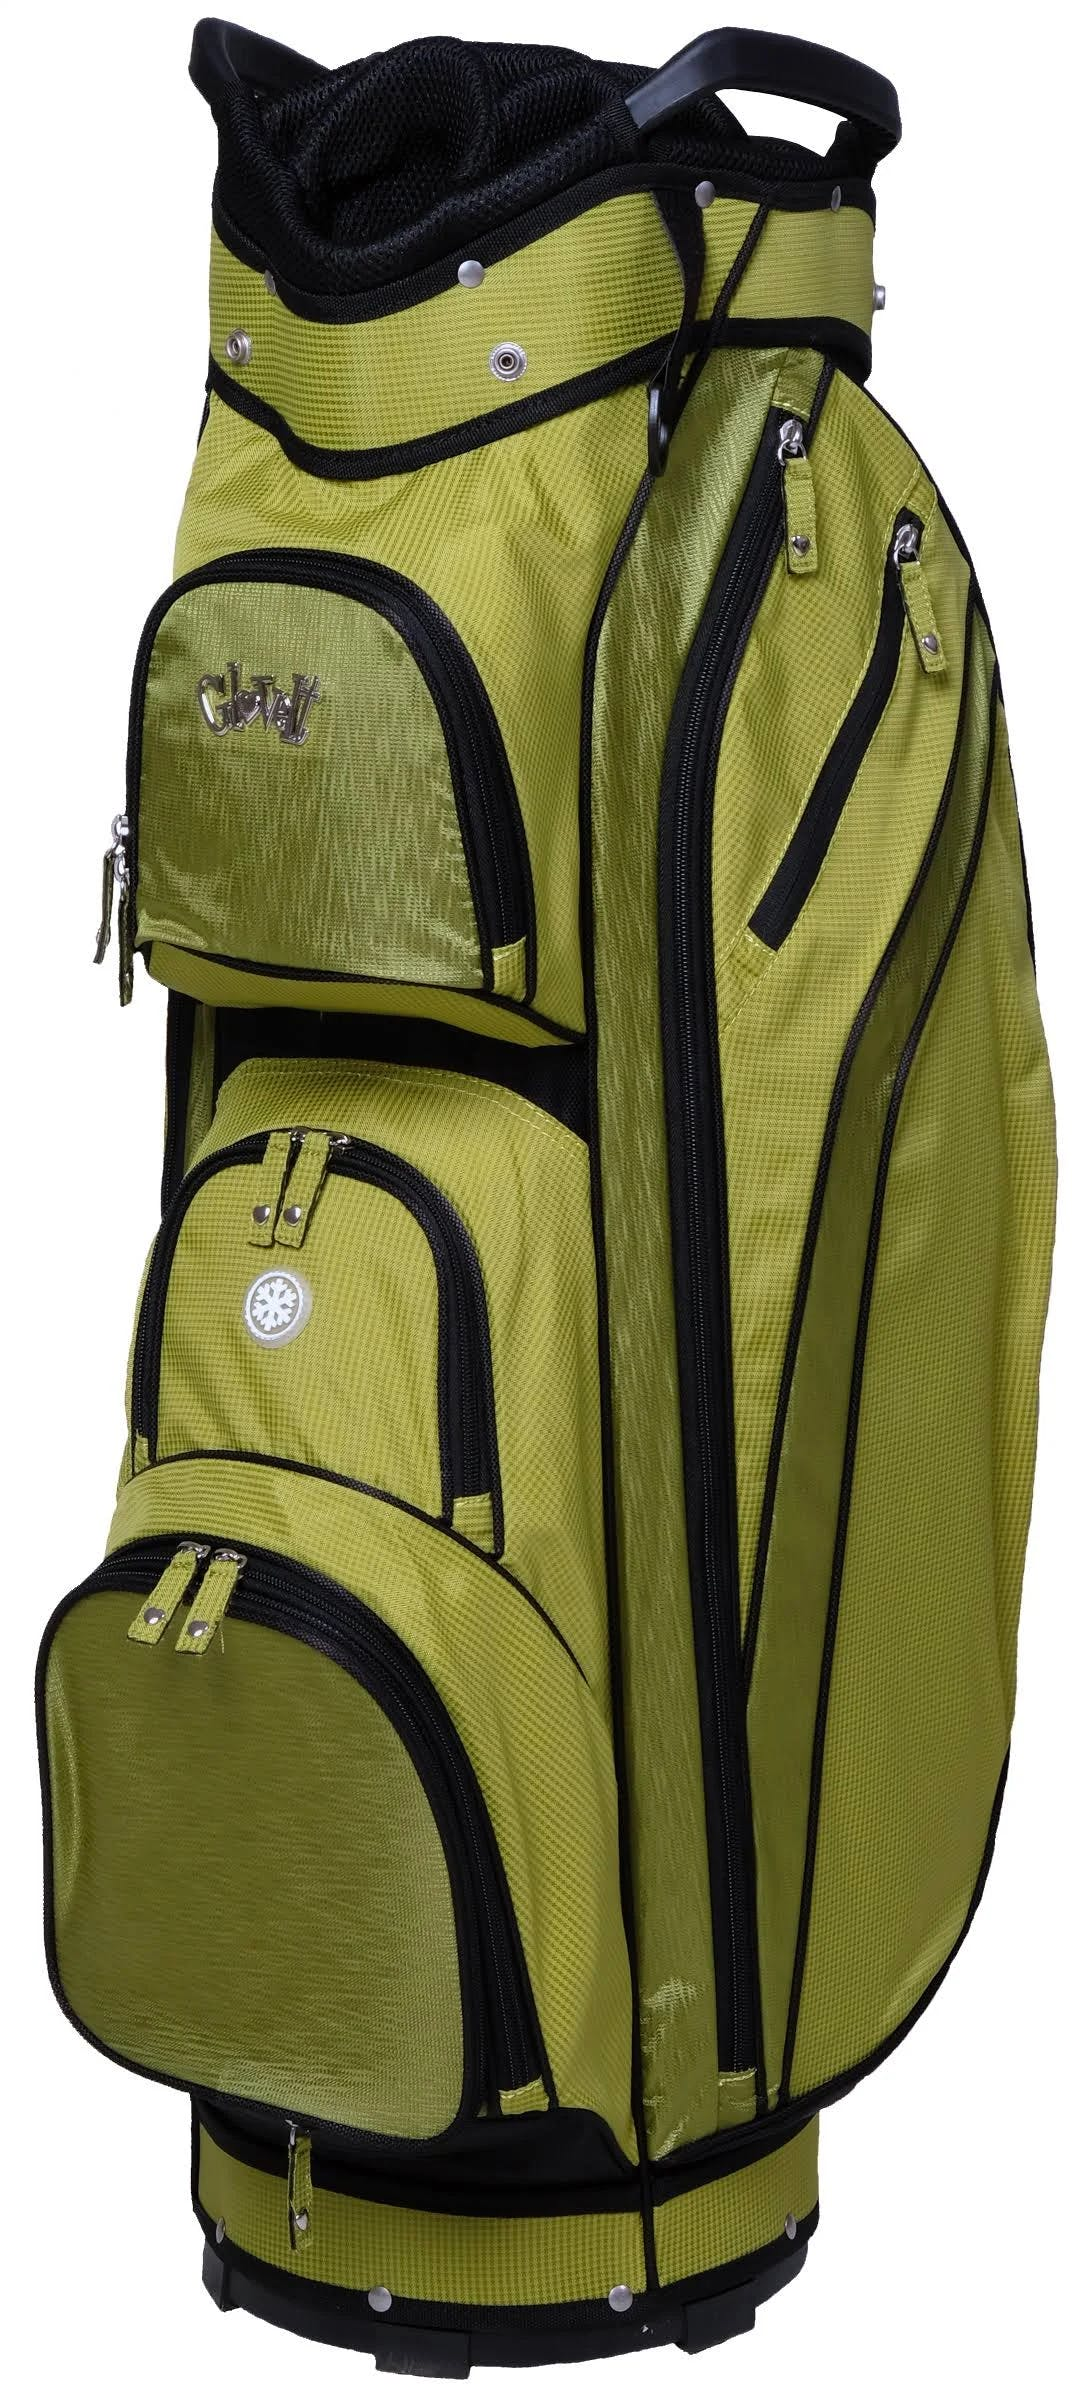 Glove It Golf Bag Kiwi Check